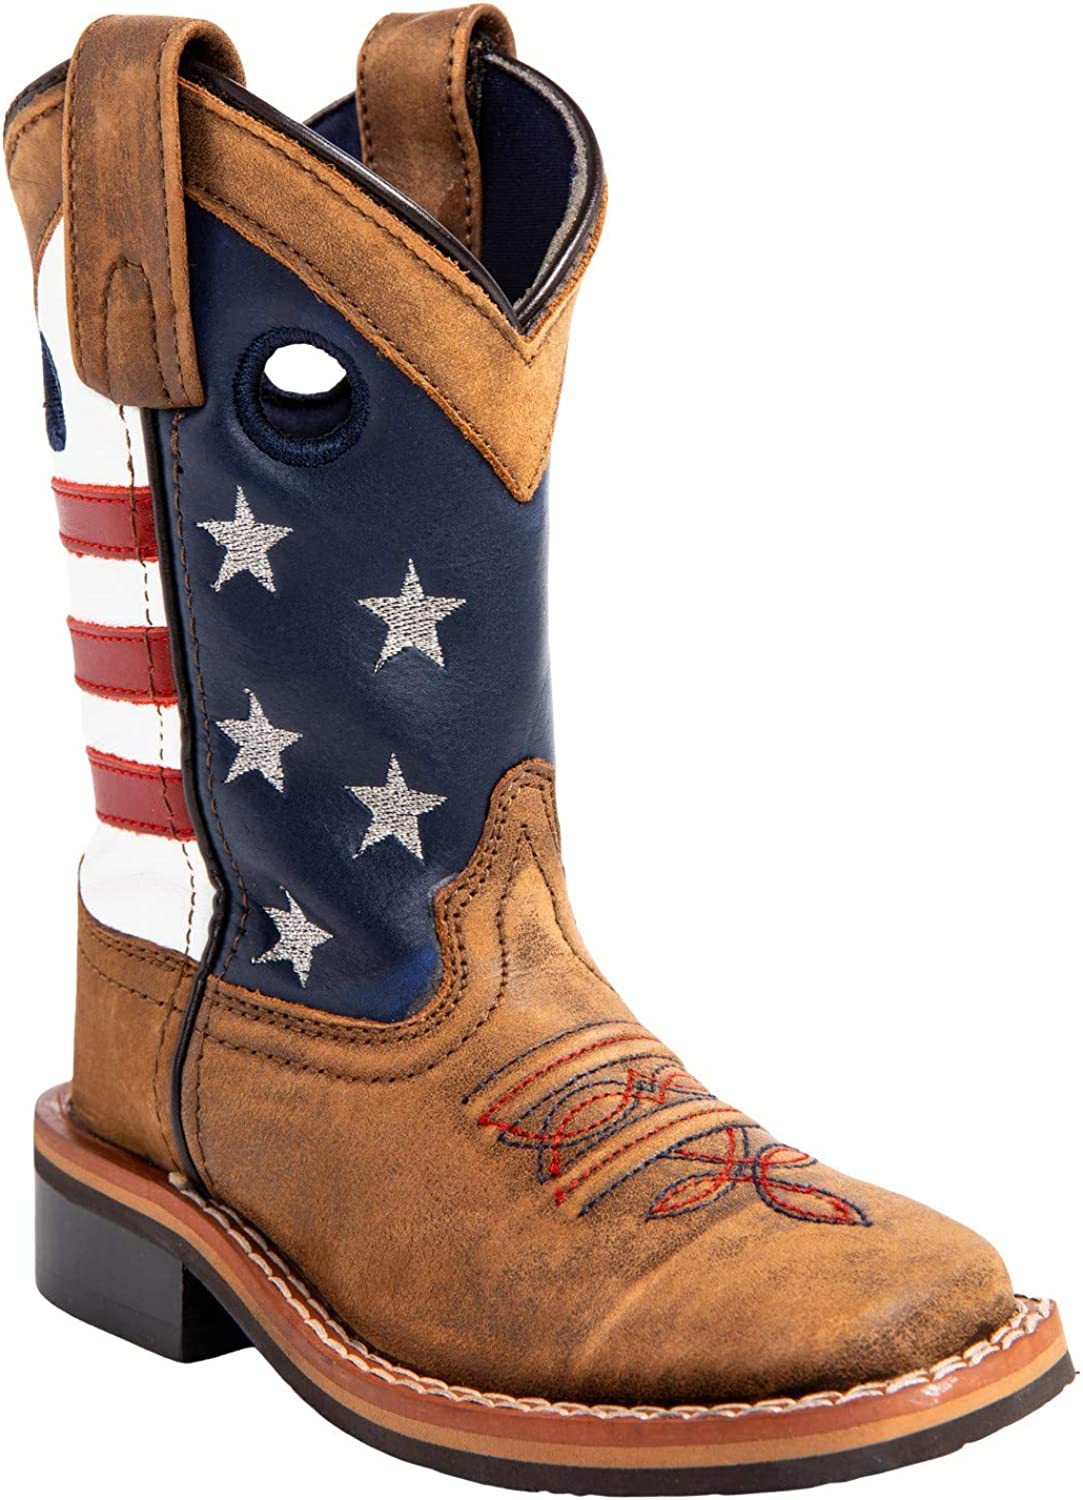 Cody James Boys' USA Flag Western - Wide Popular brand Square 43880 Max 54% OFF Boot Toe